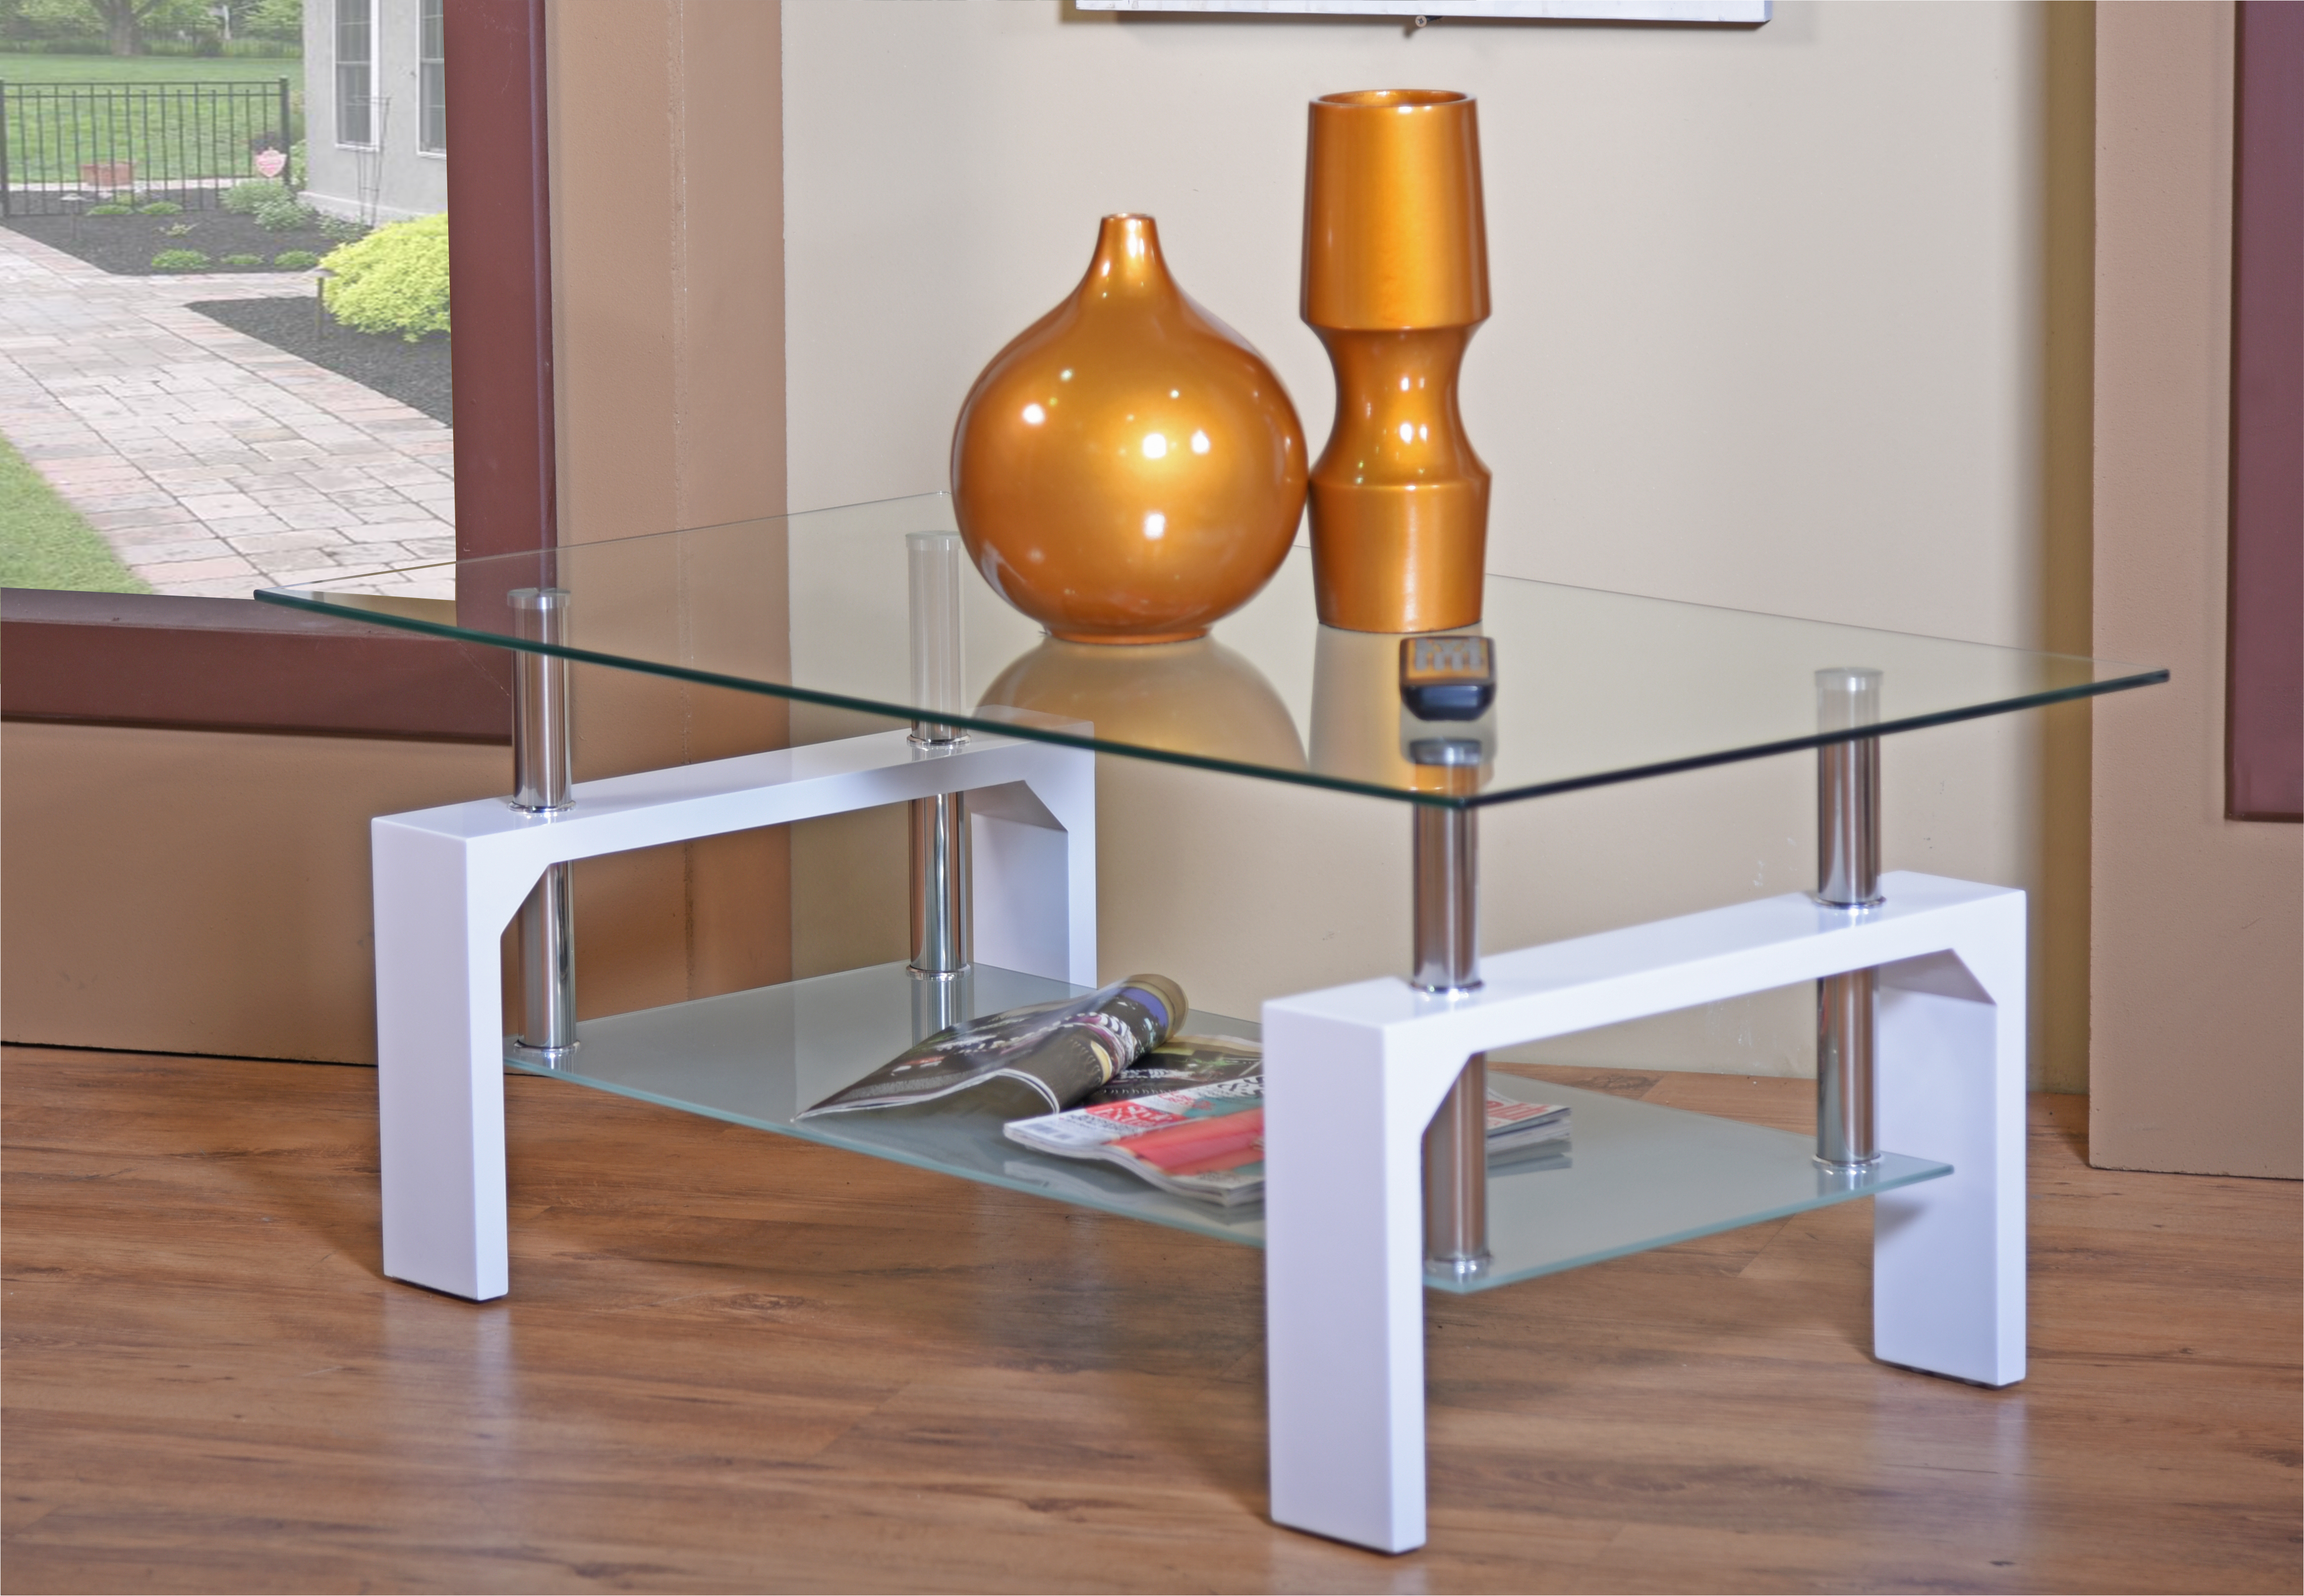 Tables calico coffee table glass yes 1 year was sold for Yes decoration